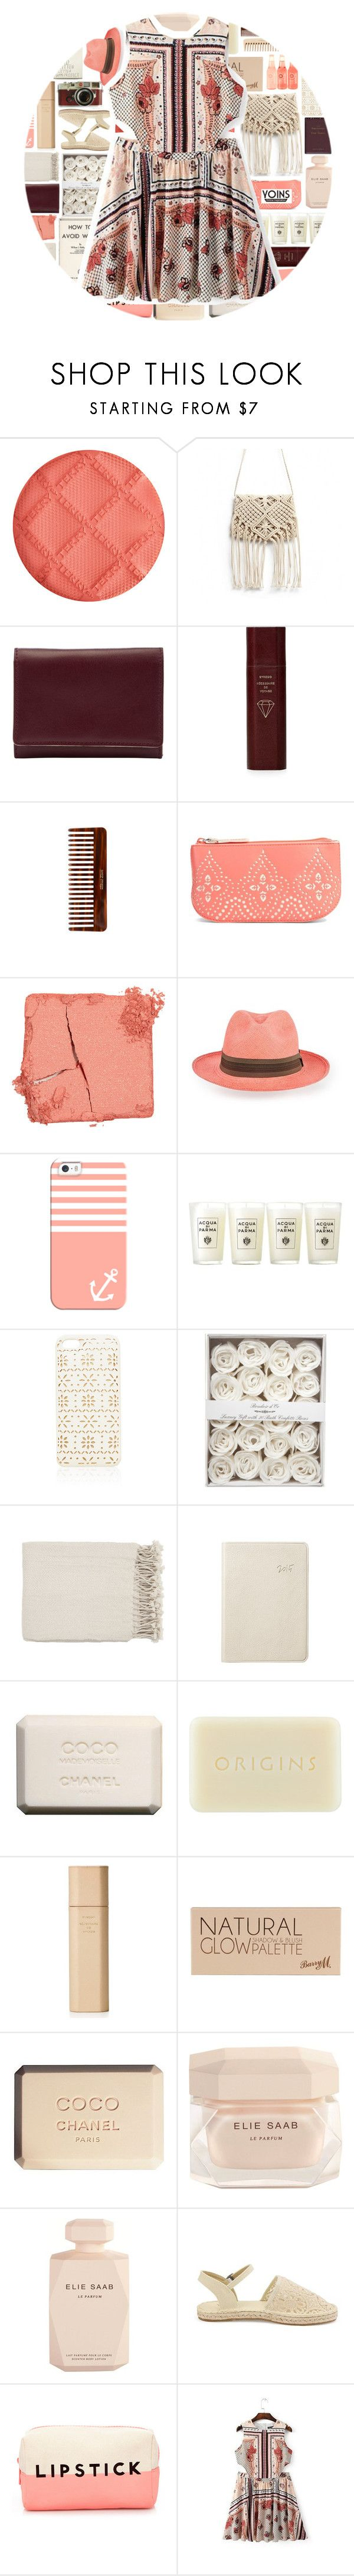 """YOINS"" by xgracieeee ❤ liked on Polyvore featuring By Terry, Leica, John Lewis, Byredo, philosophy, (MALIN+GOETZ), Vera Bradley, Illamasqua, Prymal and Casetify"